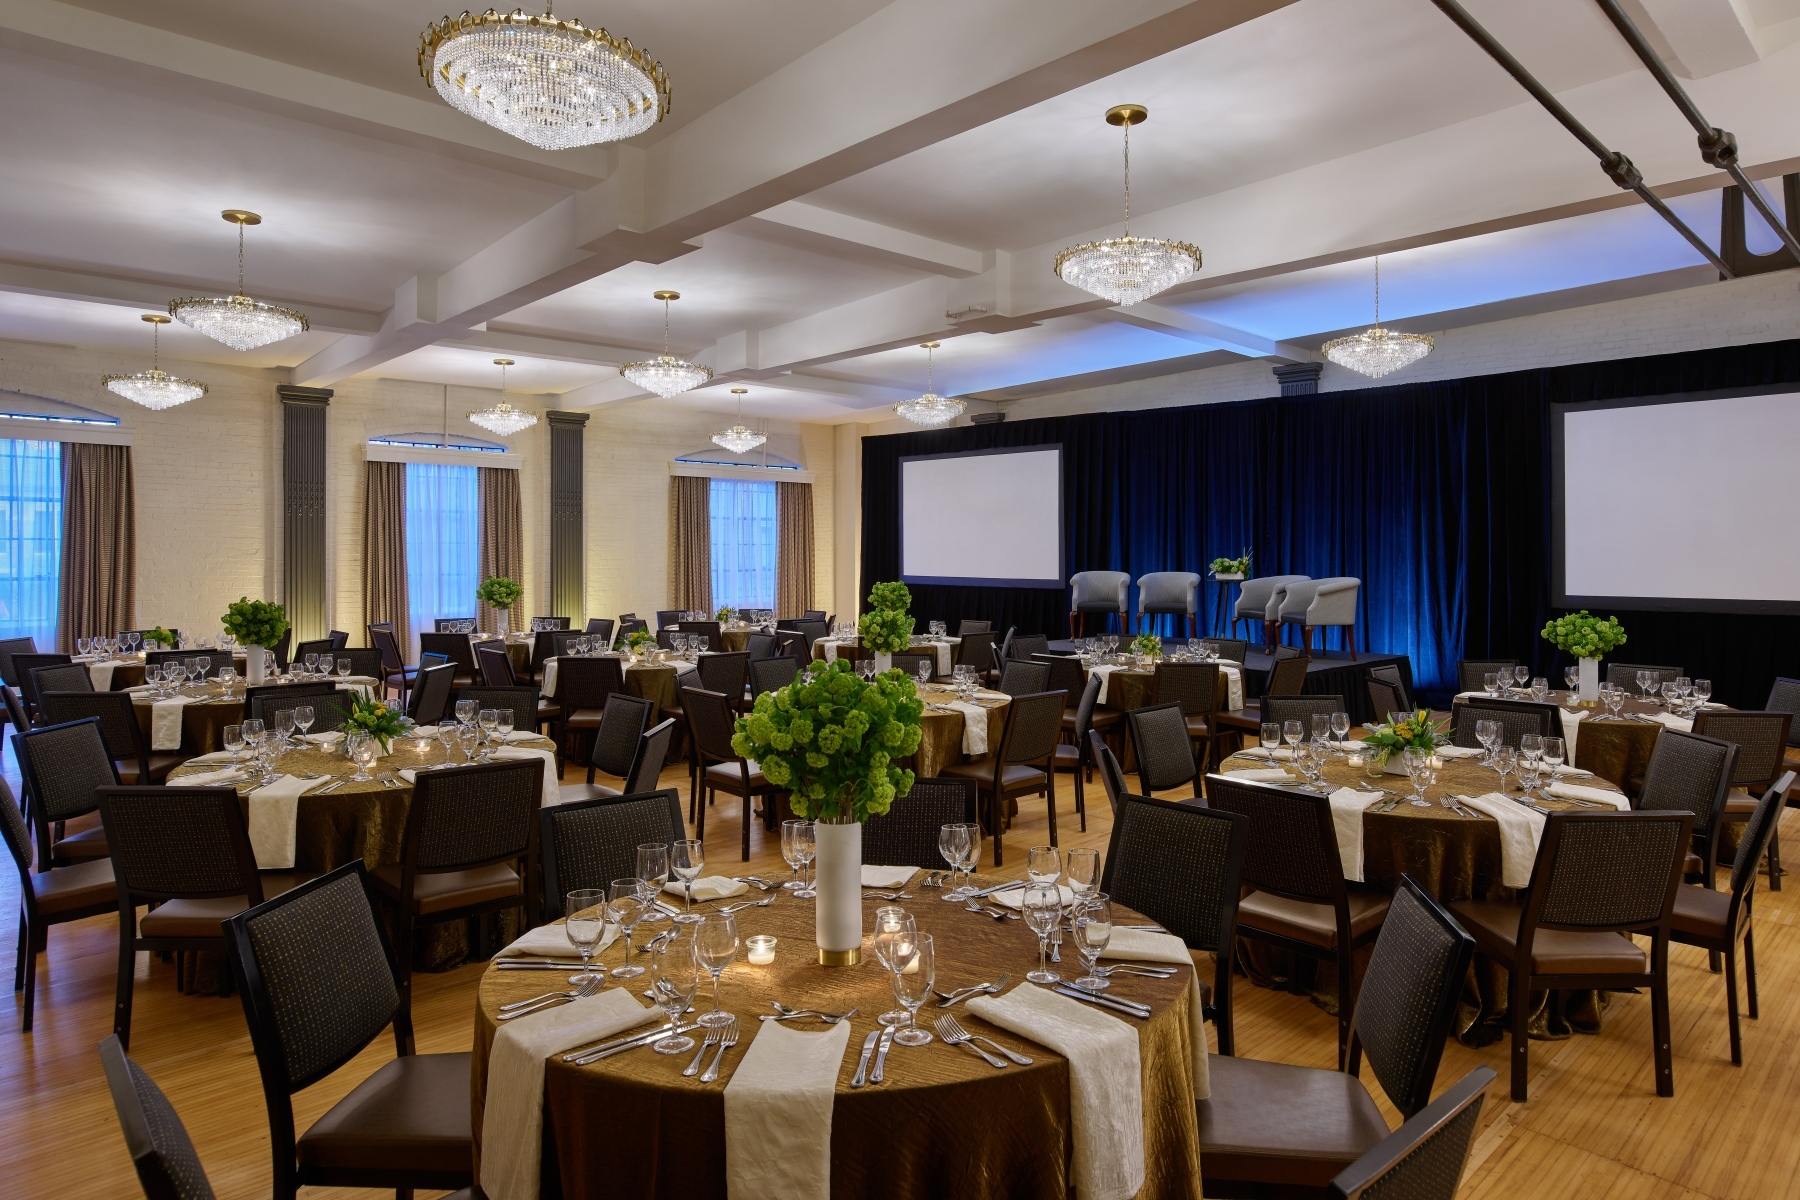 The Oxford Hotel event space in denver